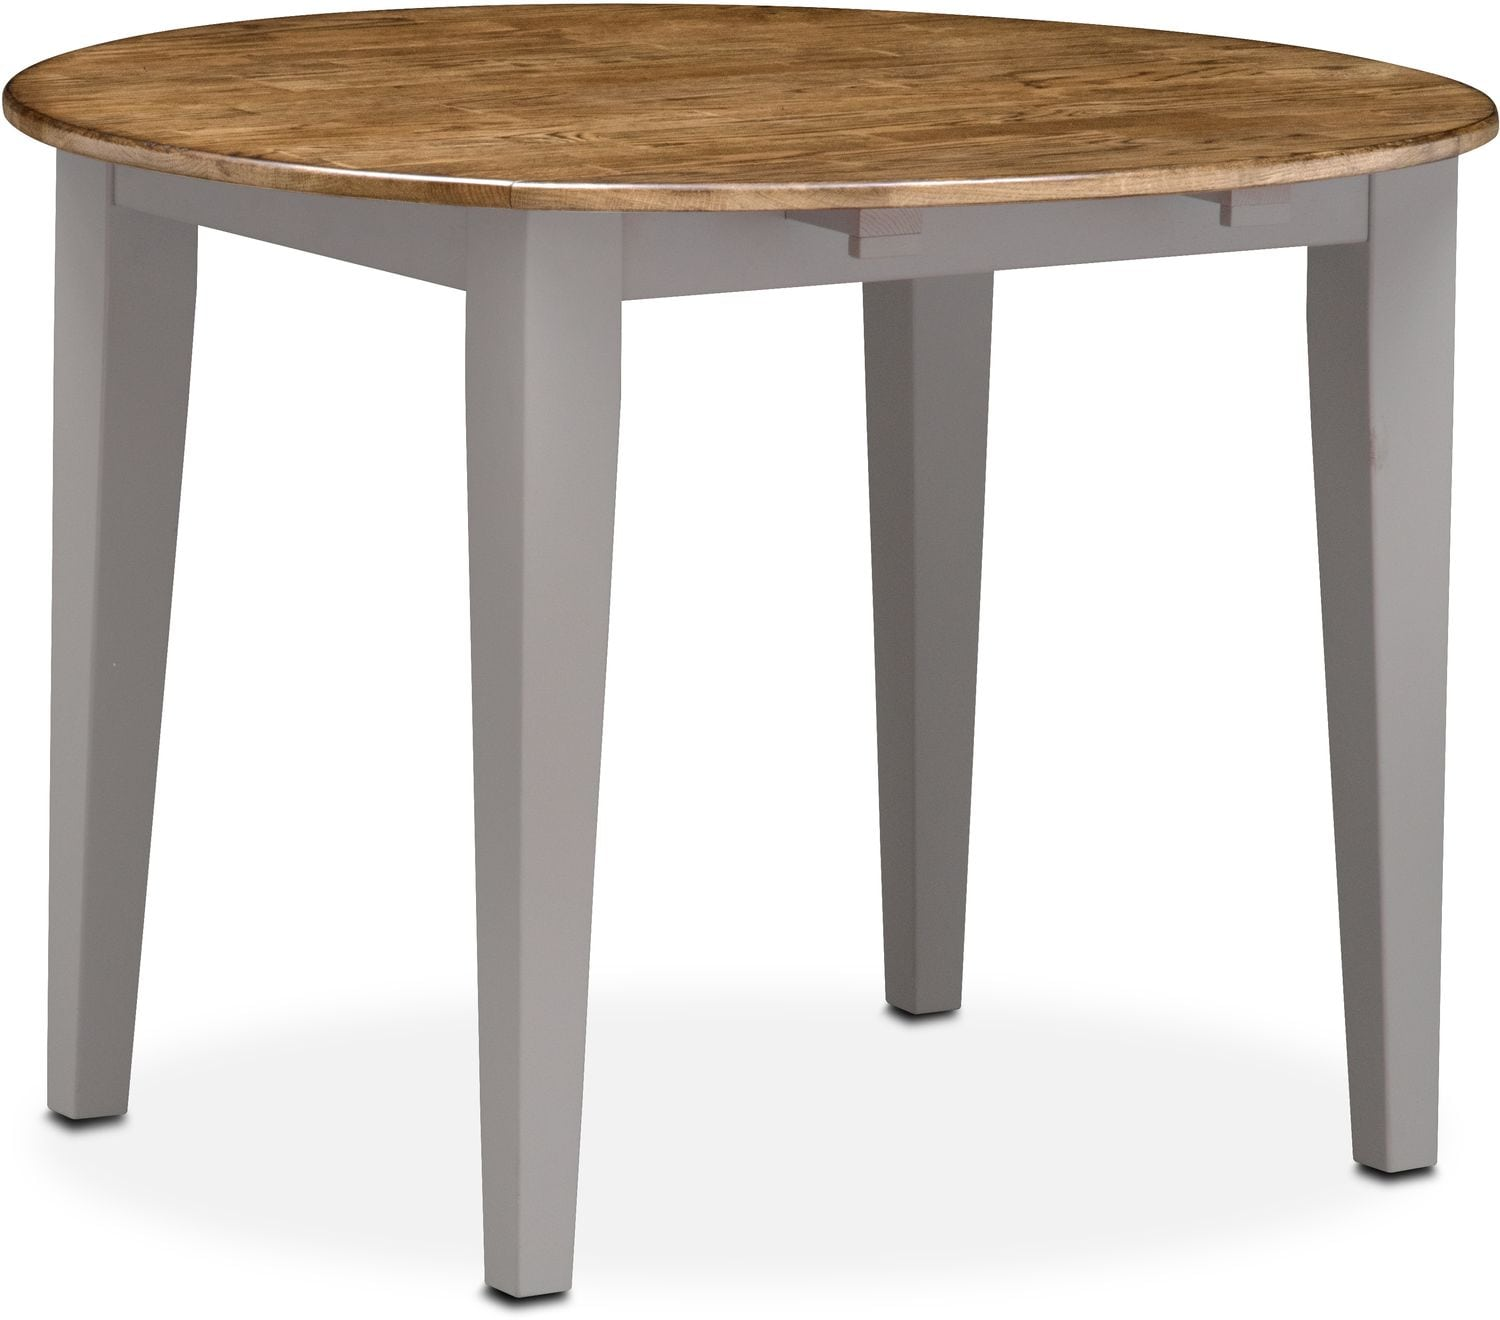 Nantucket Drop Leaf Table Oak and Gray